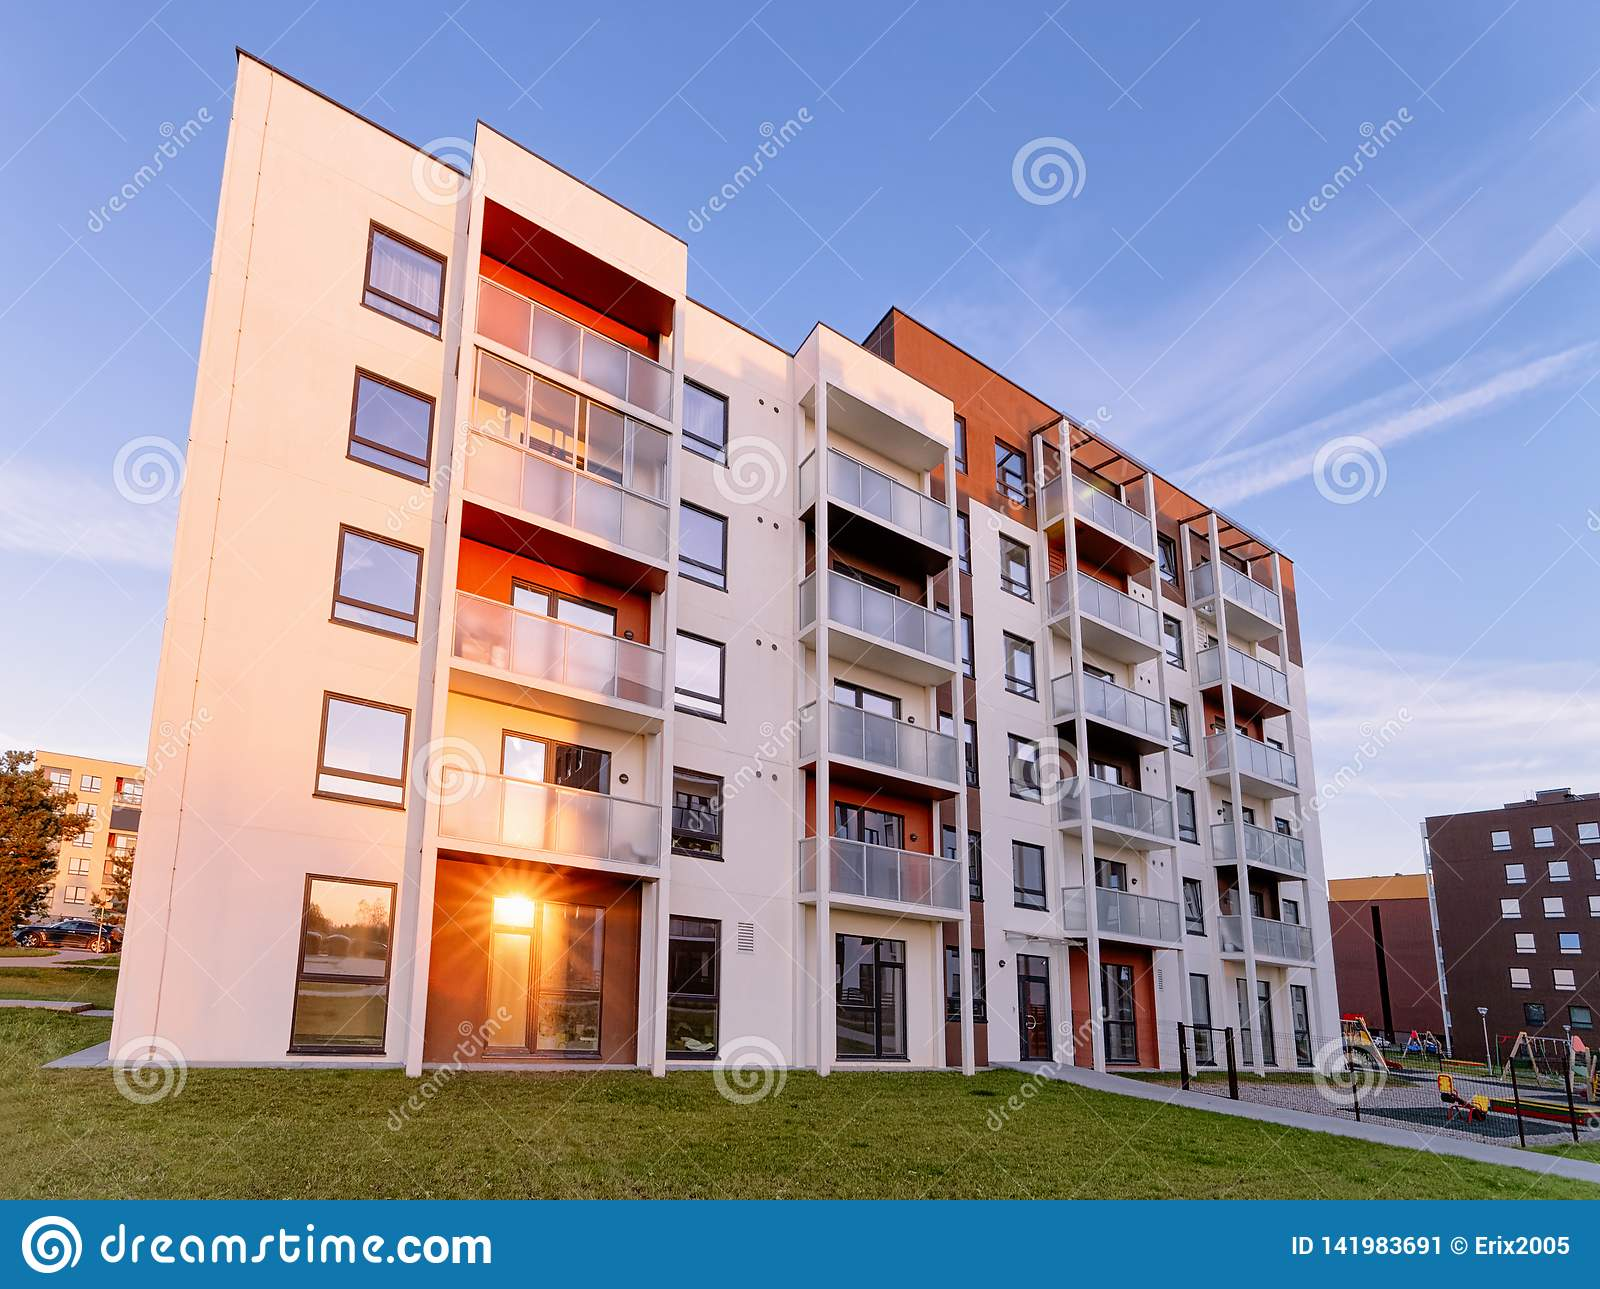 Apartment modern house and home residential building real estate sunset